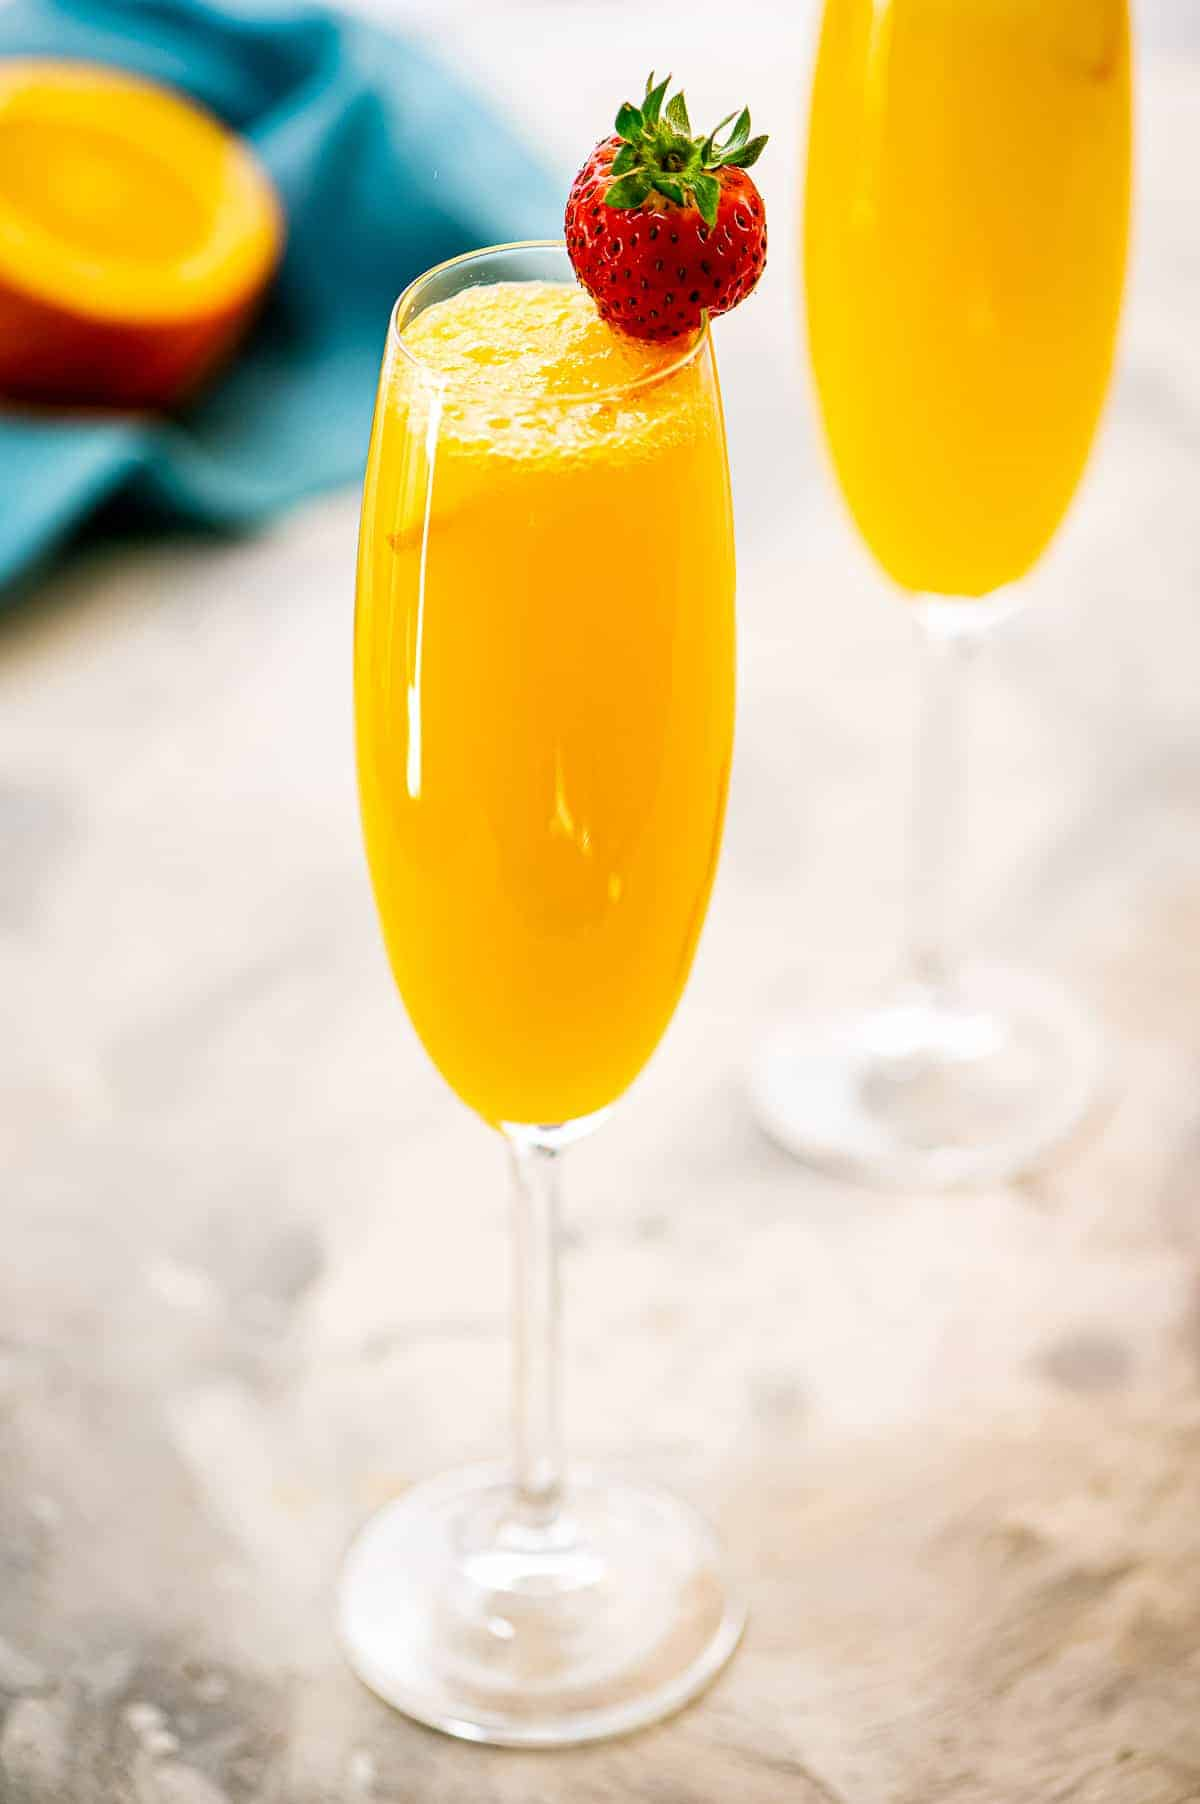 Champagne flute with a Mimosa in it and strawberry garnish